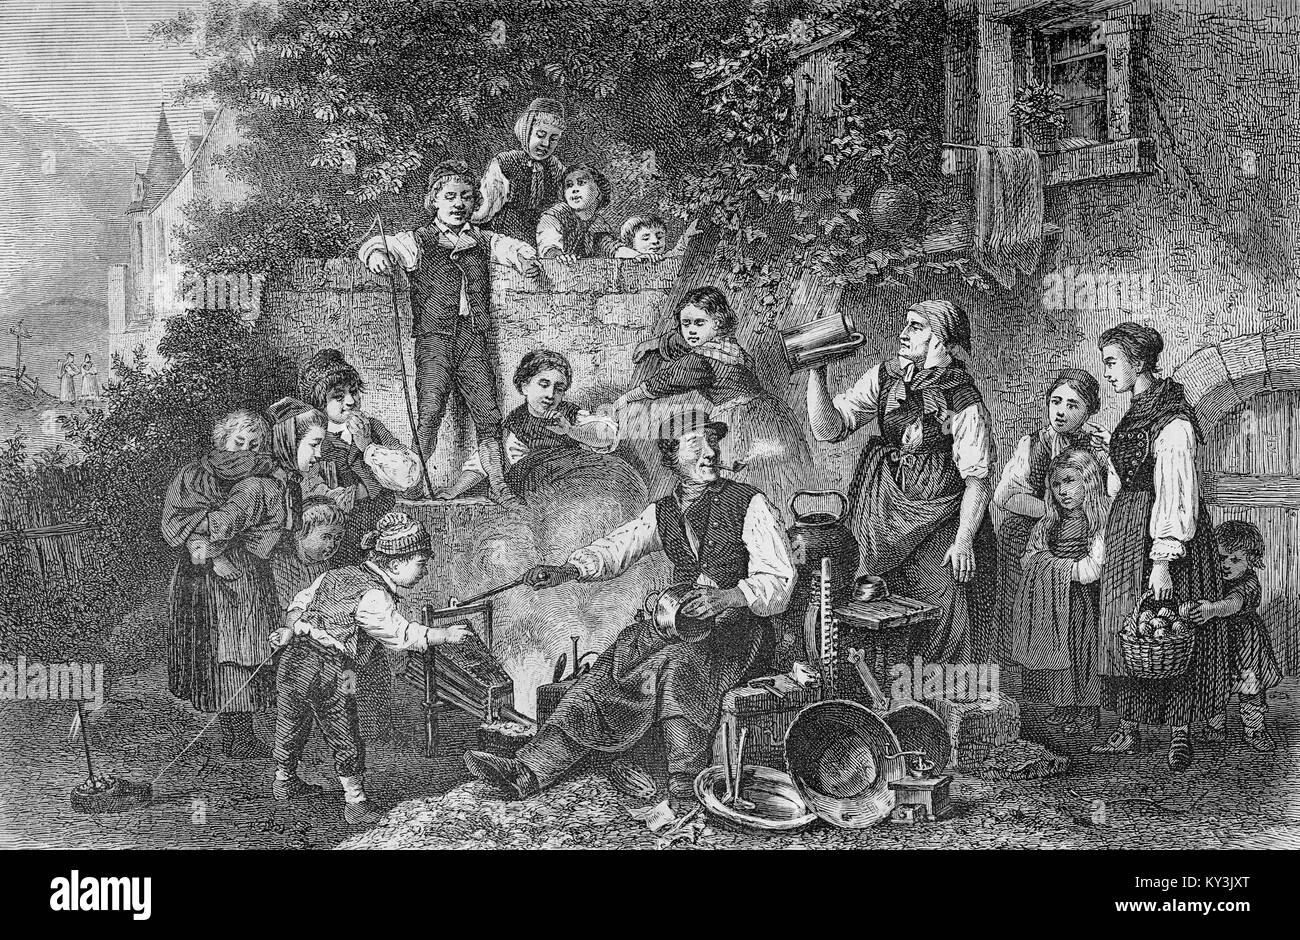 Vintage rural lifestyle; the tinkerer working in a yard surrounded by curious people - Stock Image